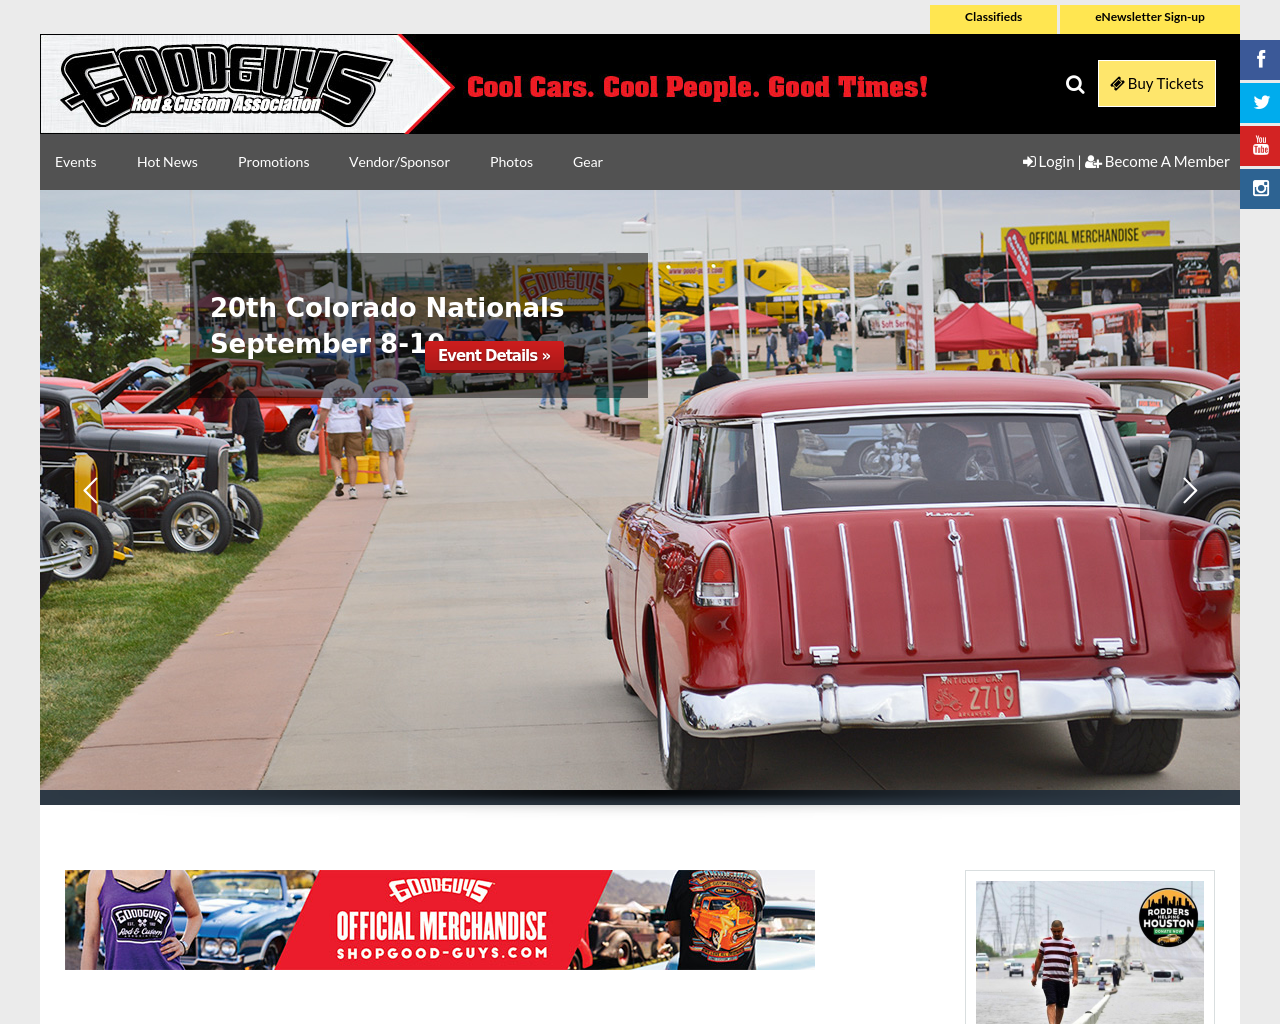 Goodguys-Advertising-Reviews-Pricing